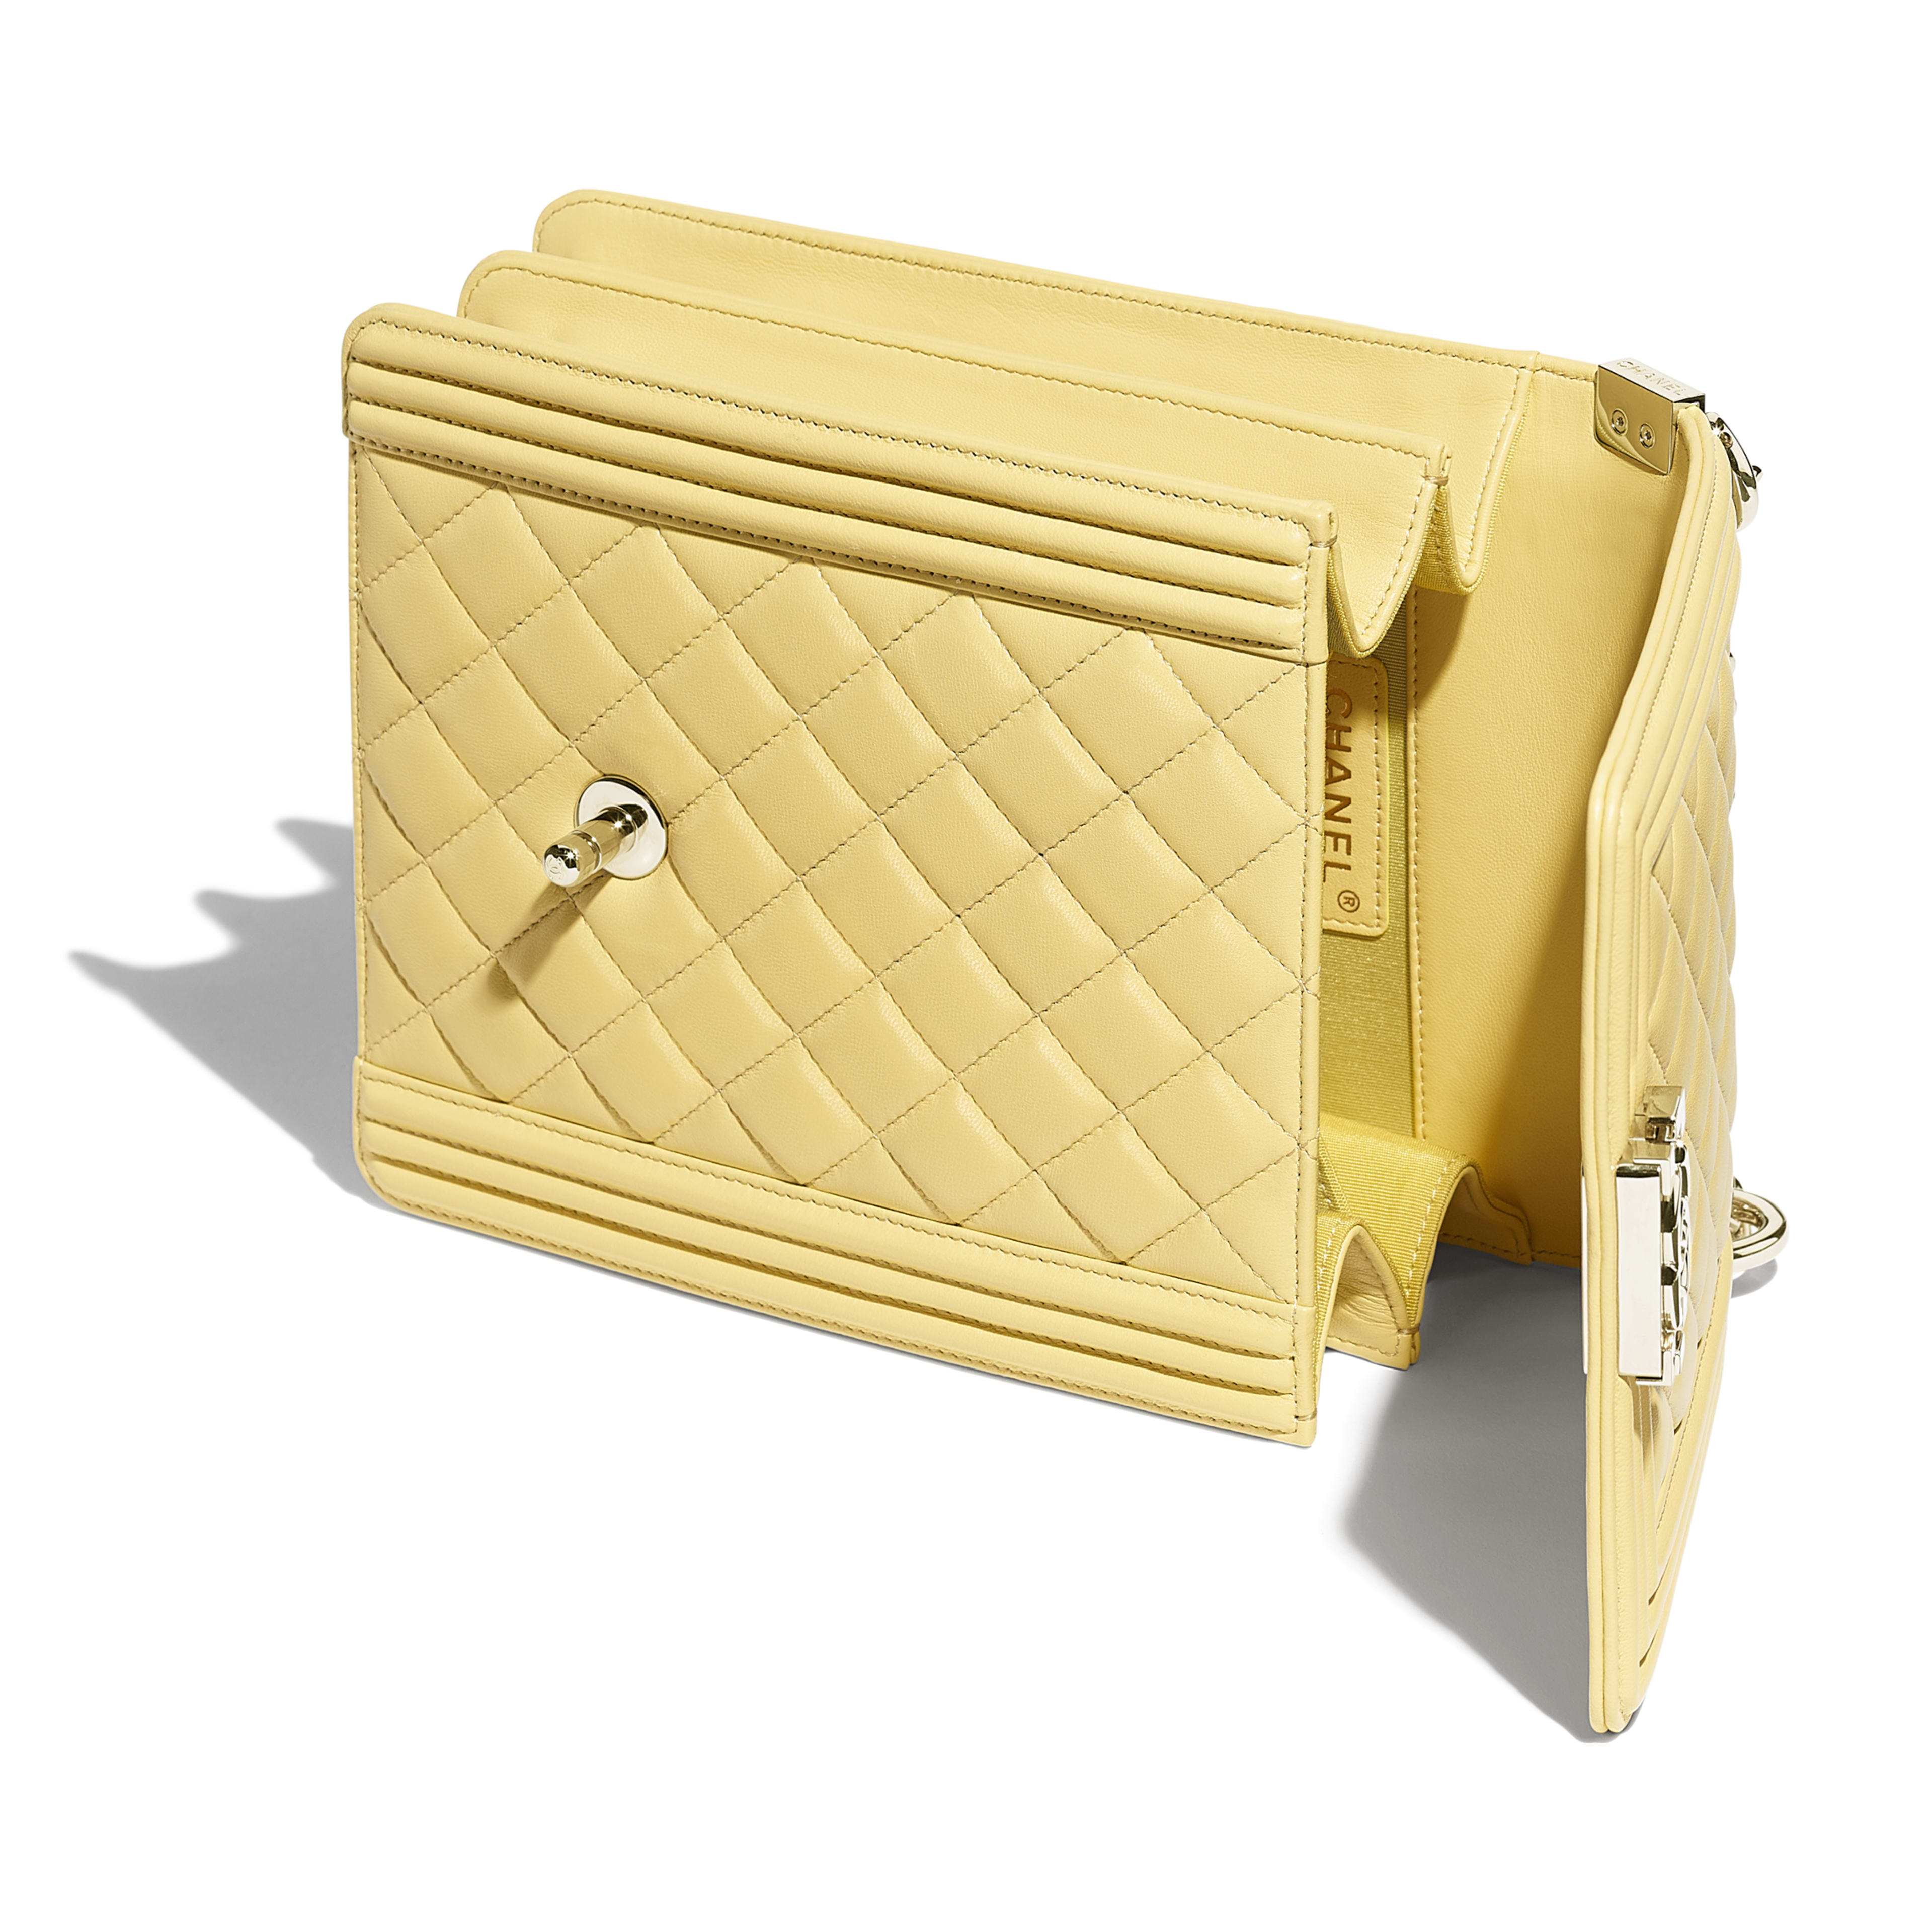 BOY CHANEL Handbag - Yellow - Calfskin & Gold-Tone Metal - Other view - see full sized version